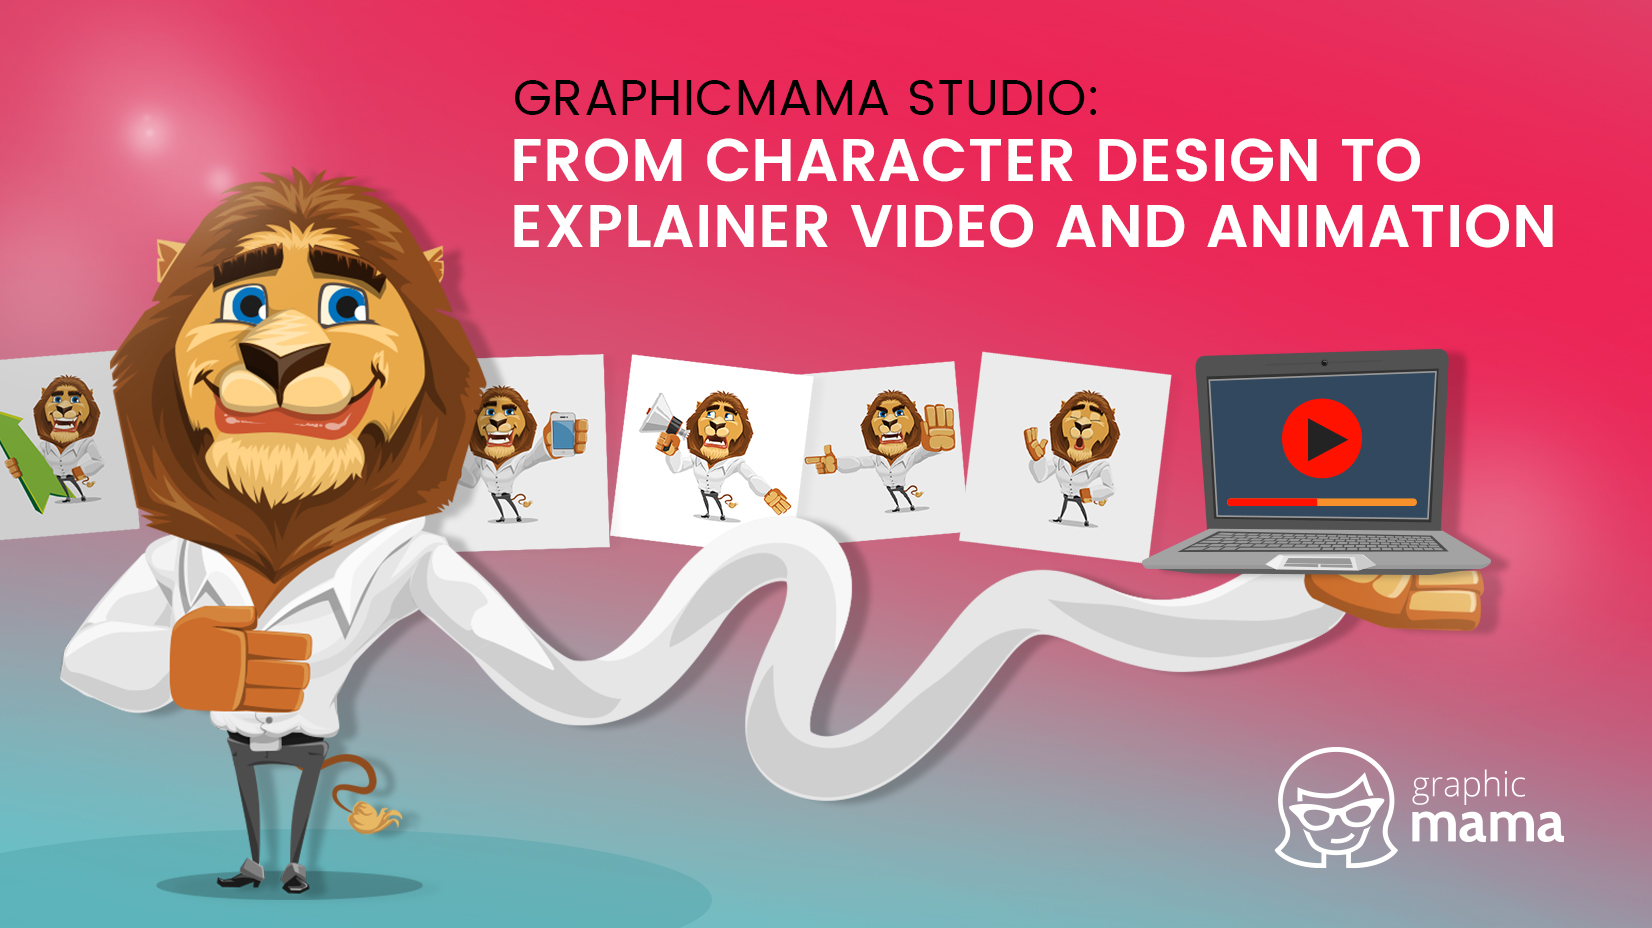 GraphicMama studio: From Character Design to Explainer Video and Animation